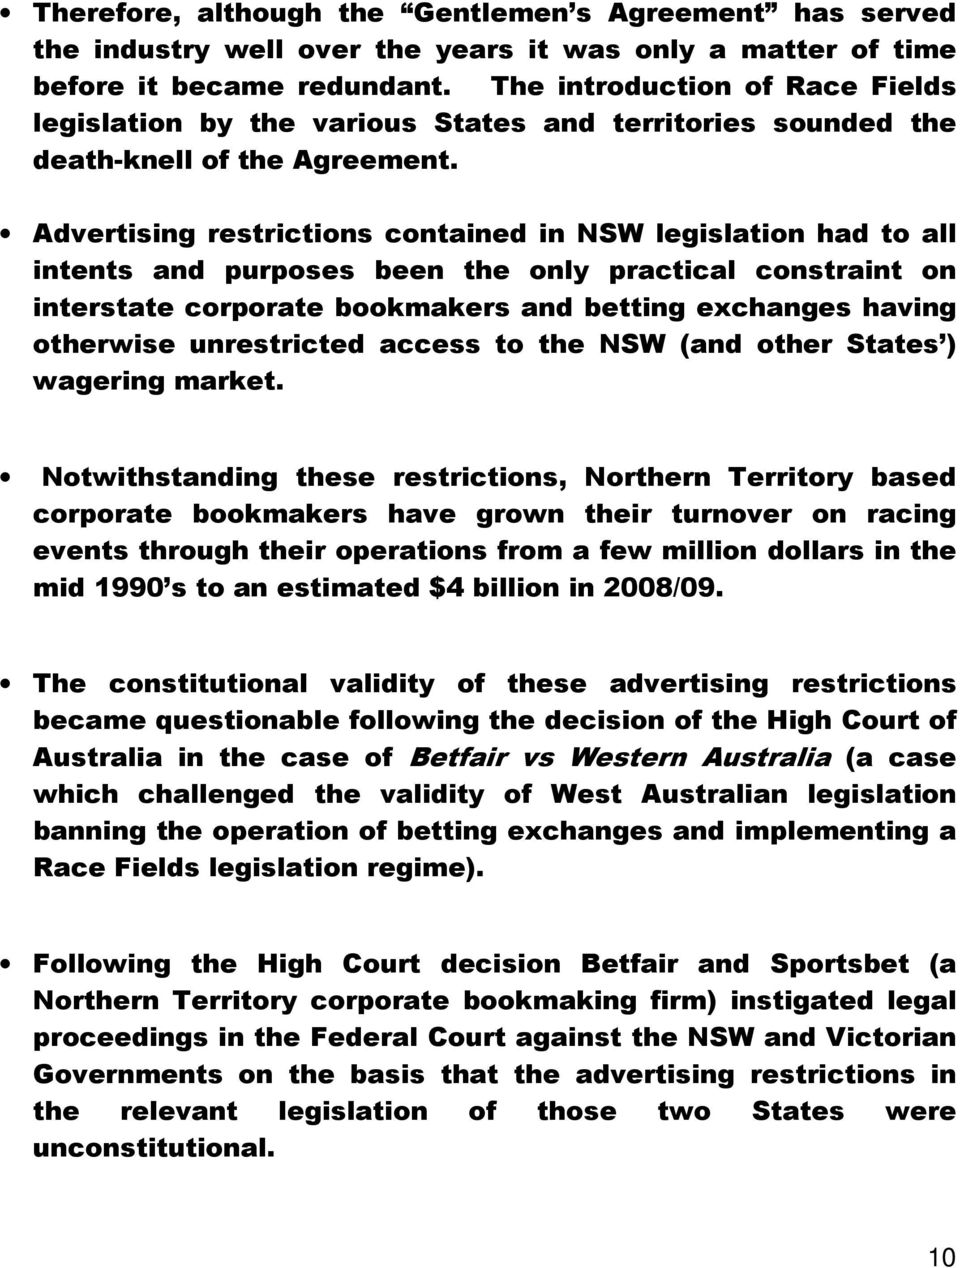 Advertising restrictions contained in NSW legislation had to all intents and purposes been the only practical constraint on interstate corporate bookmakers and betting exchanges having otherwise